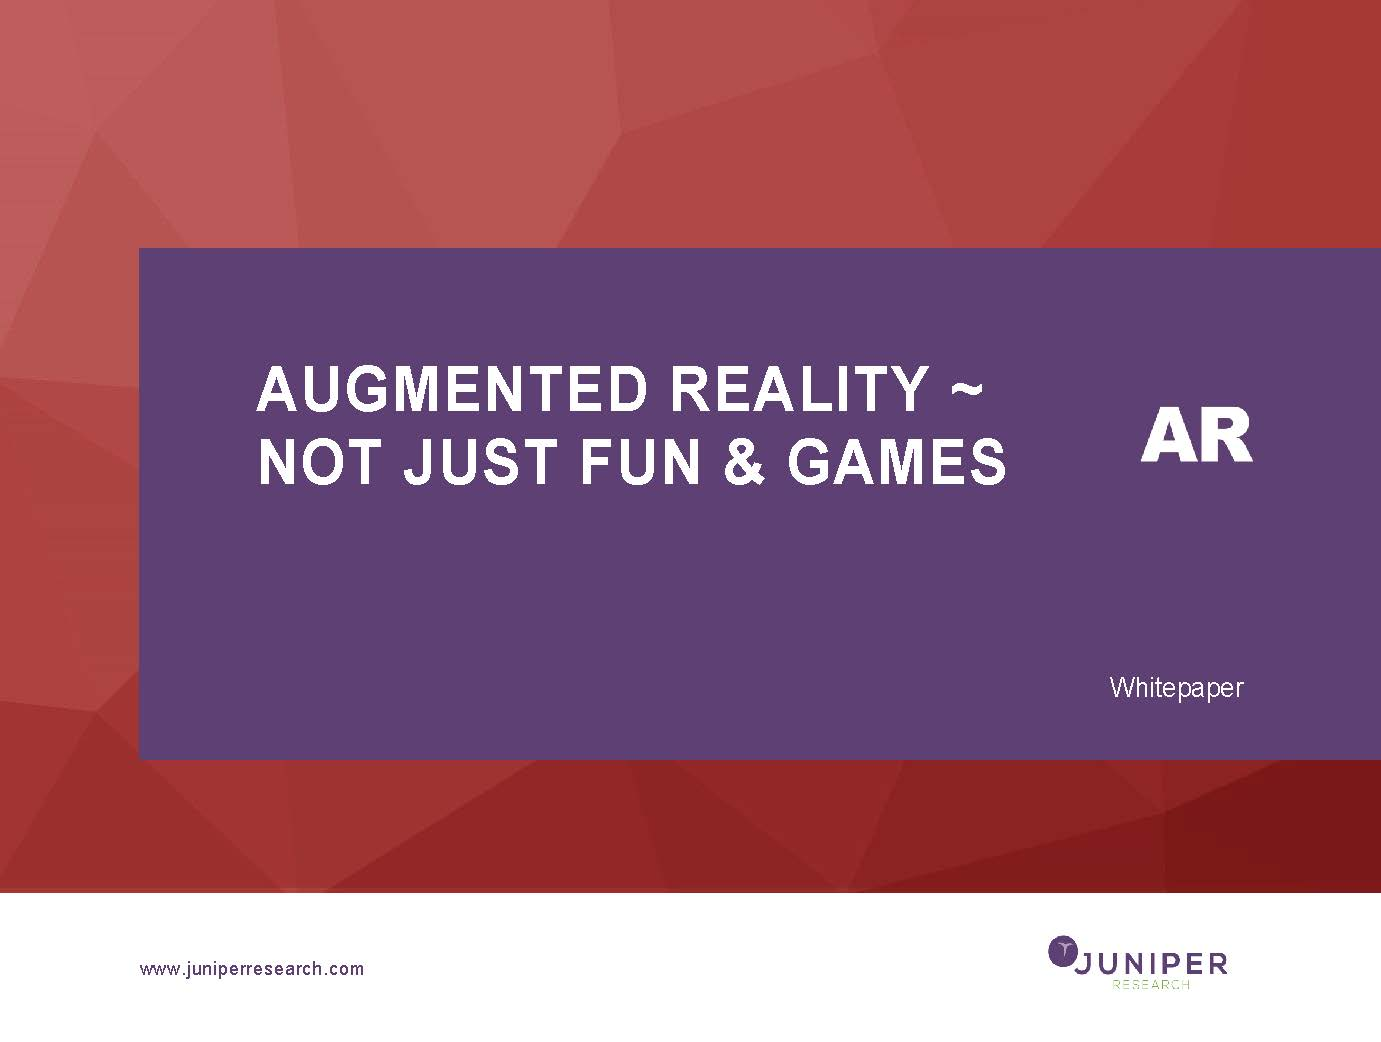 a study of augmented reality ar Framingham, mass, august 3, 2017 – worldwide revenues for the augmented reality and virtual reality (ar/vr) market are forecast to increase by 100% or more over.